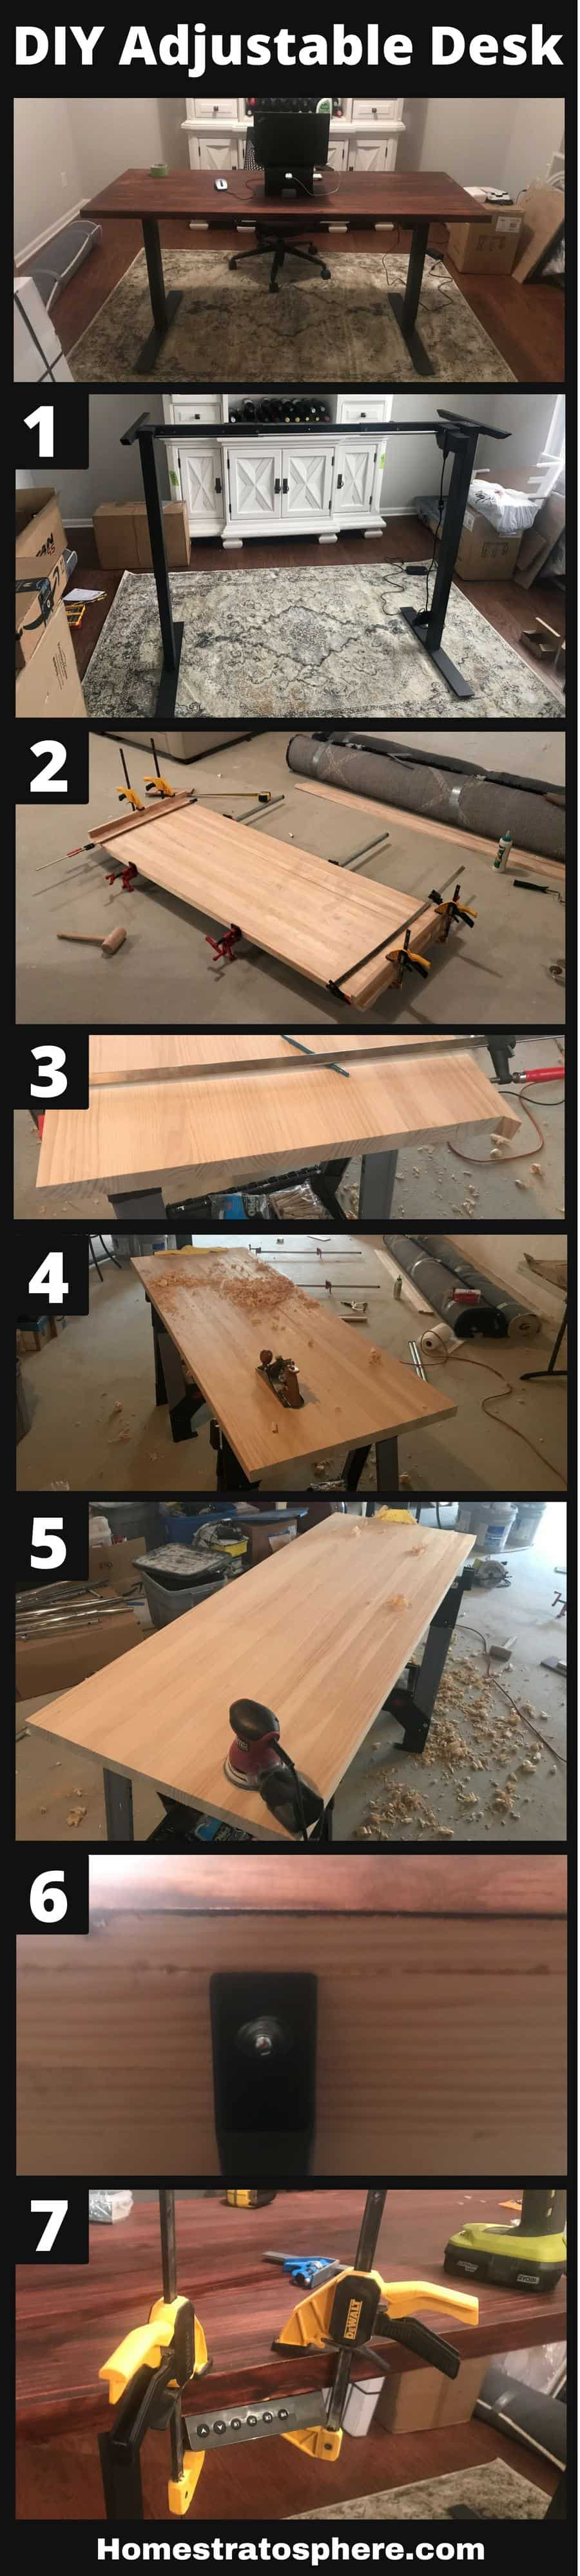 Step-by-step graphic for building an adjustable standing desk